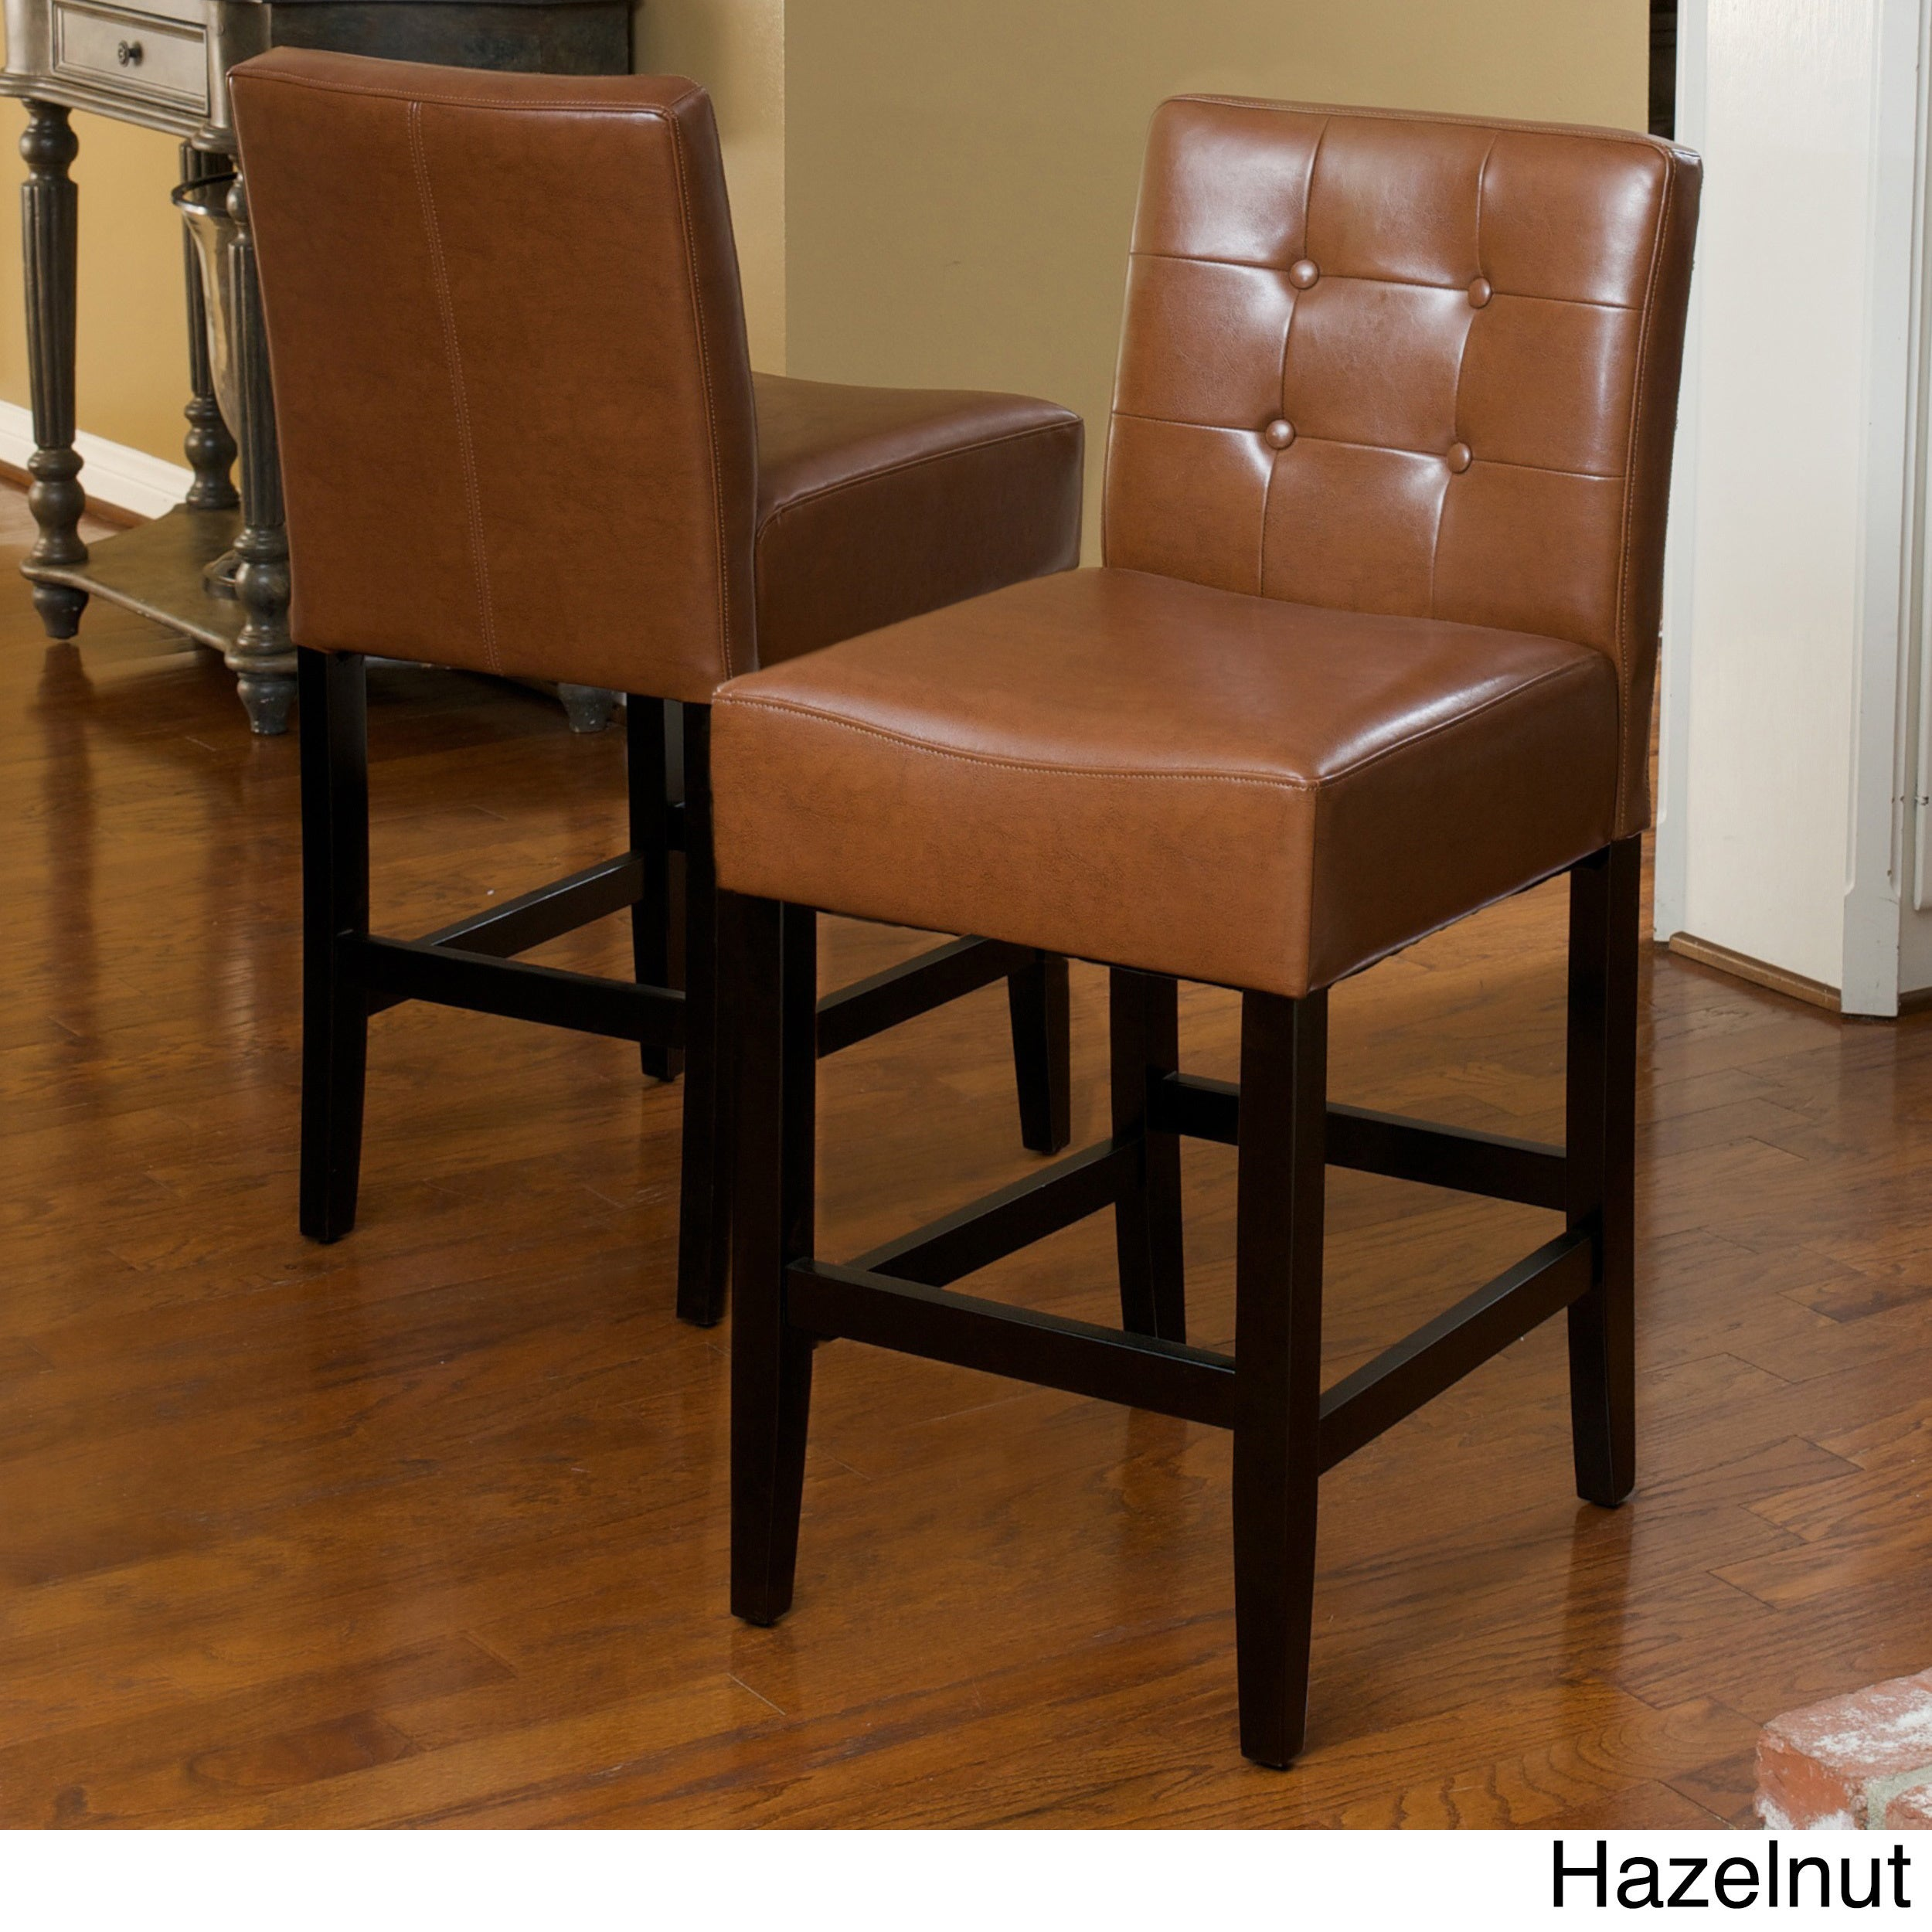 Shop Tate 26 Inch Tufted Leather Counter Stools Set Of 2 By